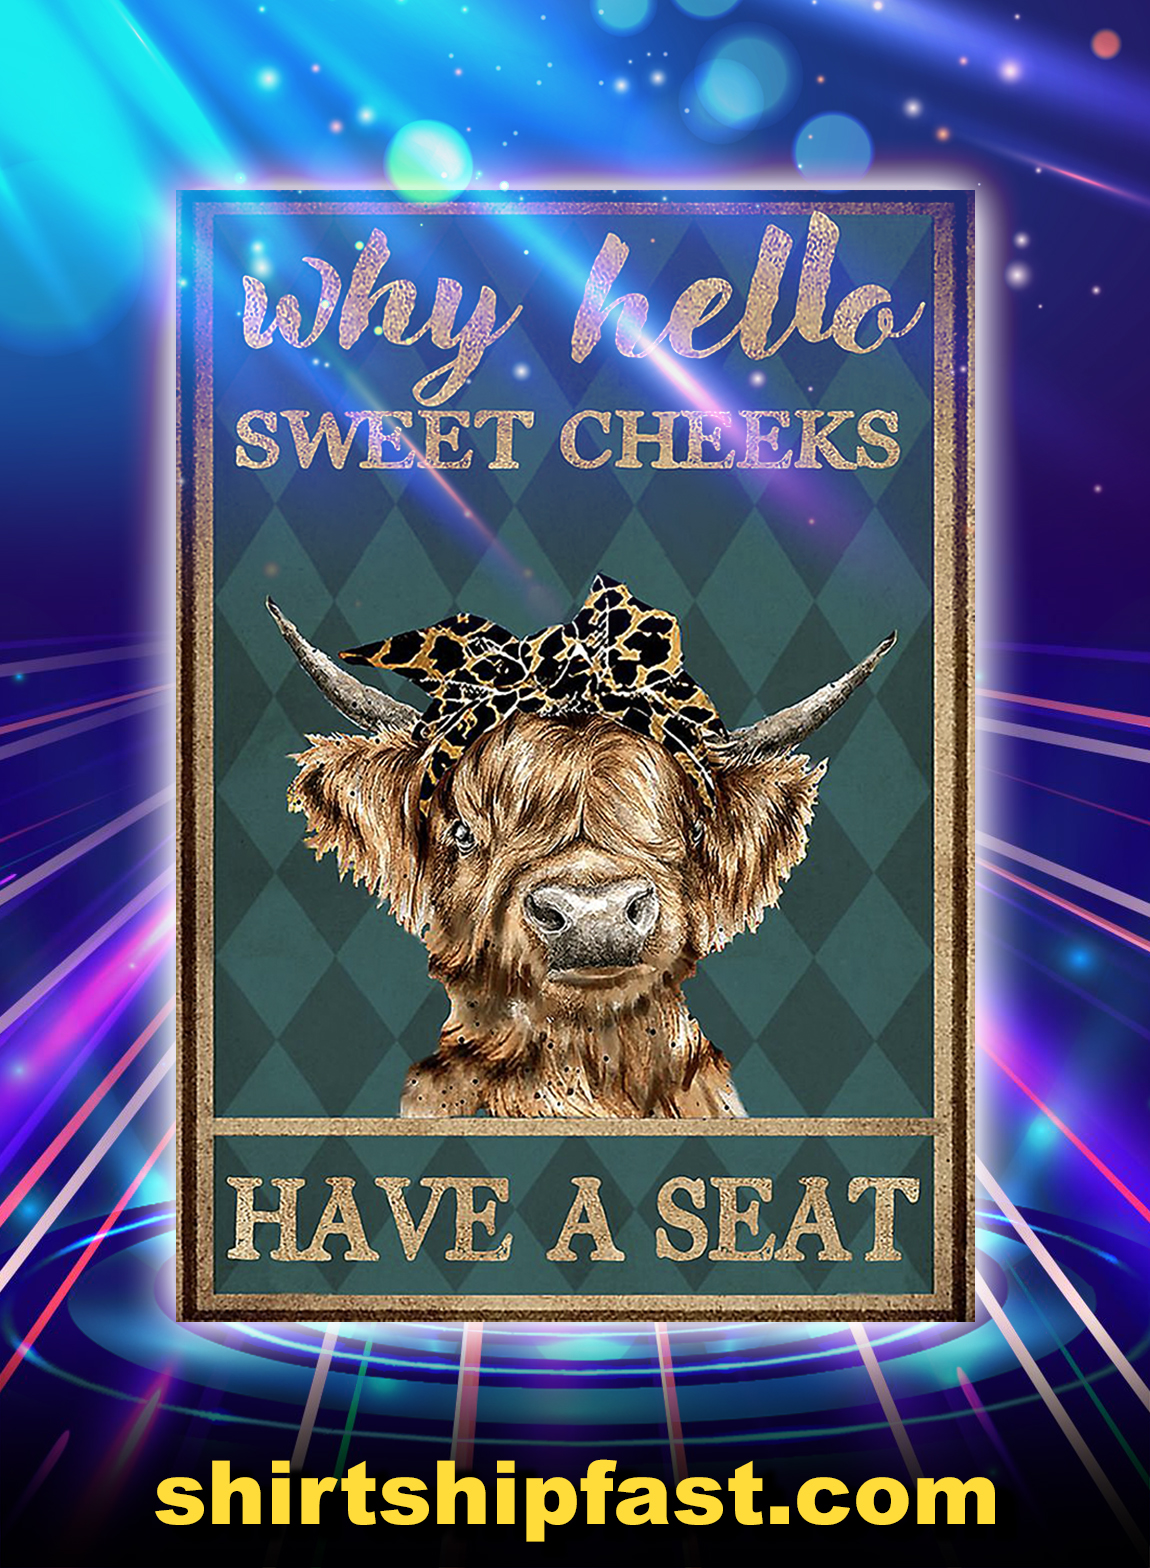 Cow highland cattle why hello sweet cheeks have a seat poster - A3